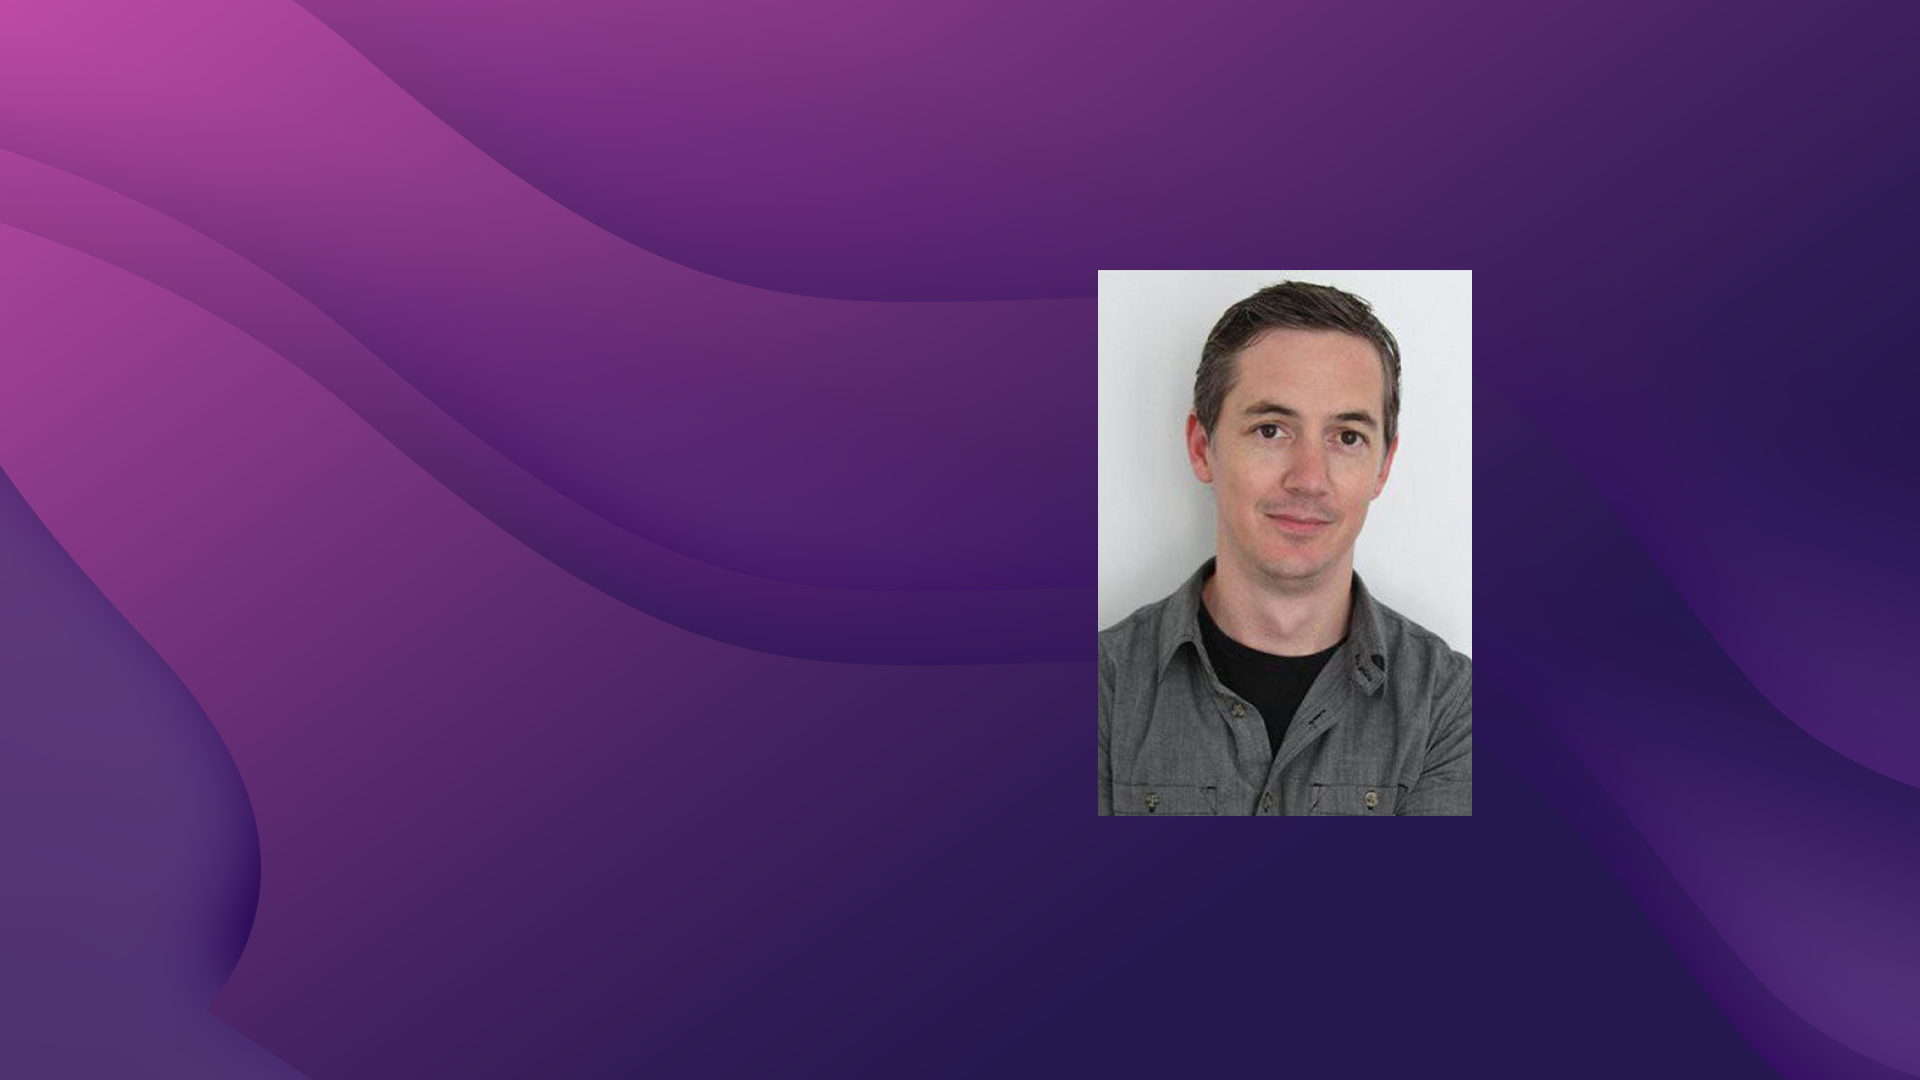 1211: Paul Dix, Founder and CTO of InfluxDB